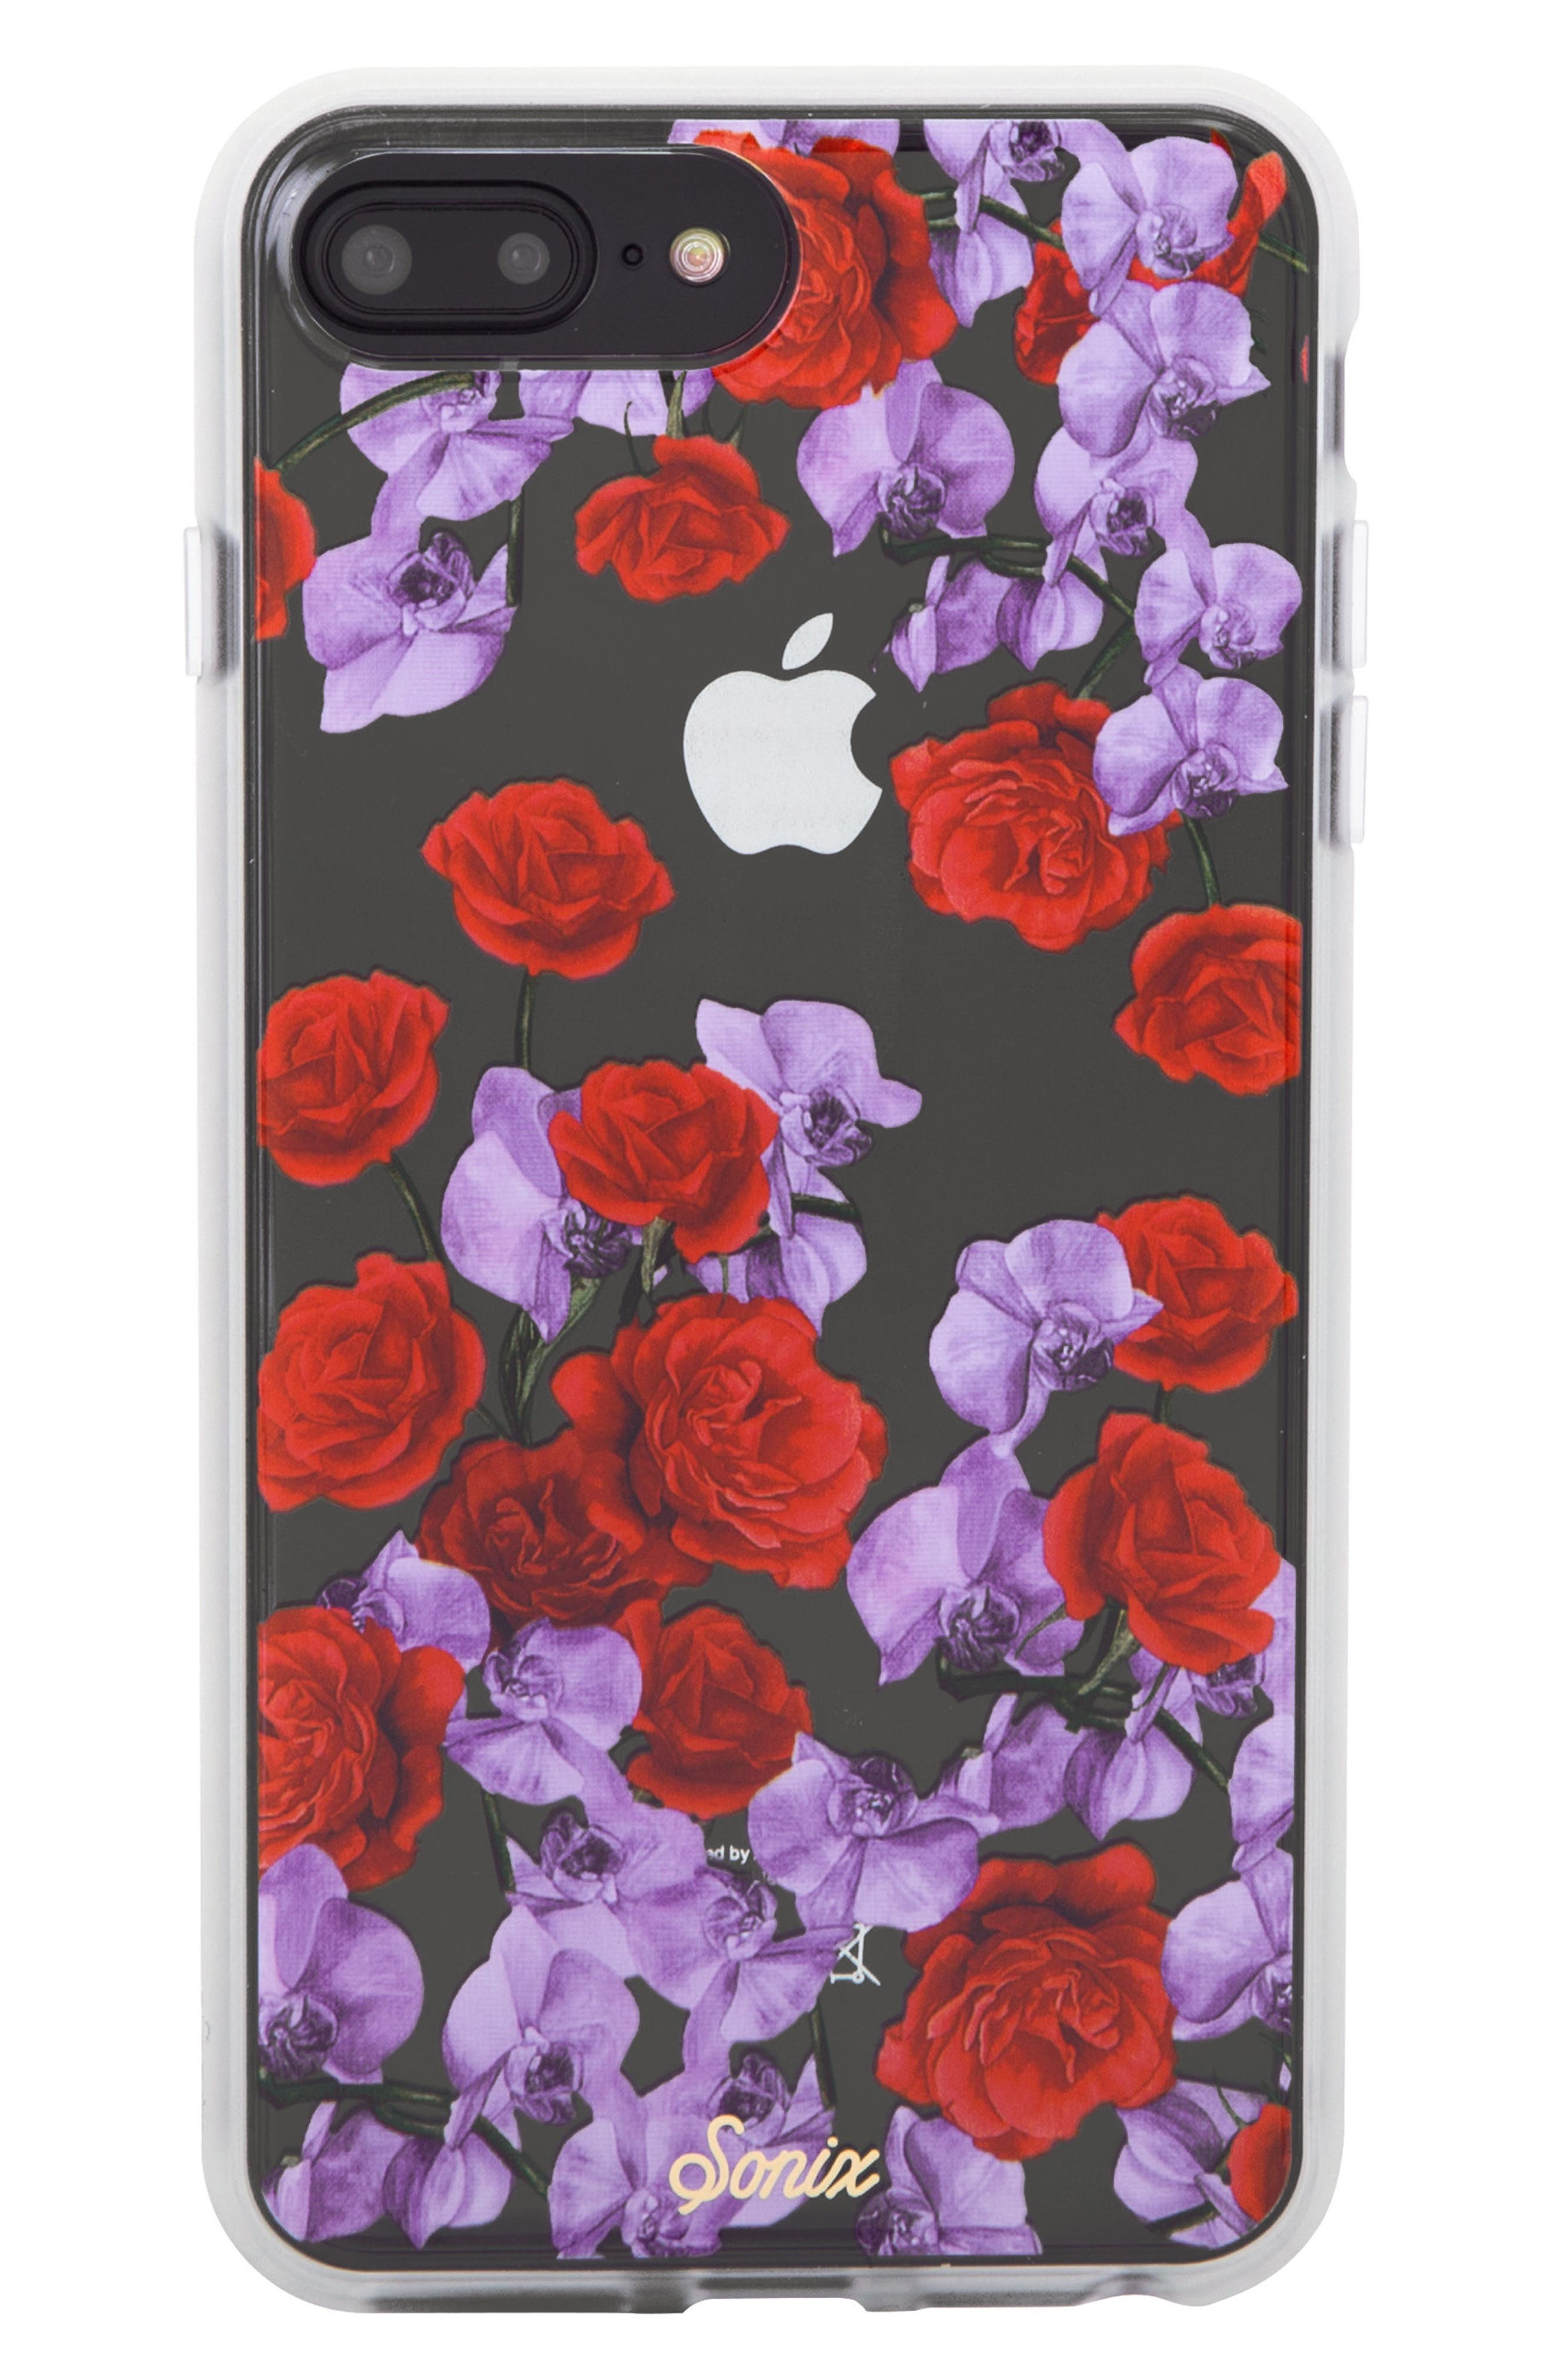 iphone 8 cell phone casessonix rose orchid iphone 6 6s 7 8 \u0026 6 6s 7 8 plus case